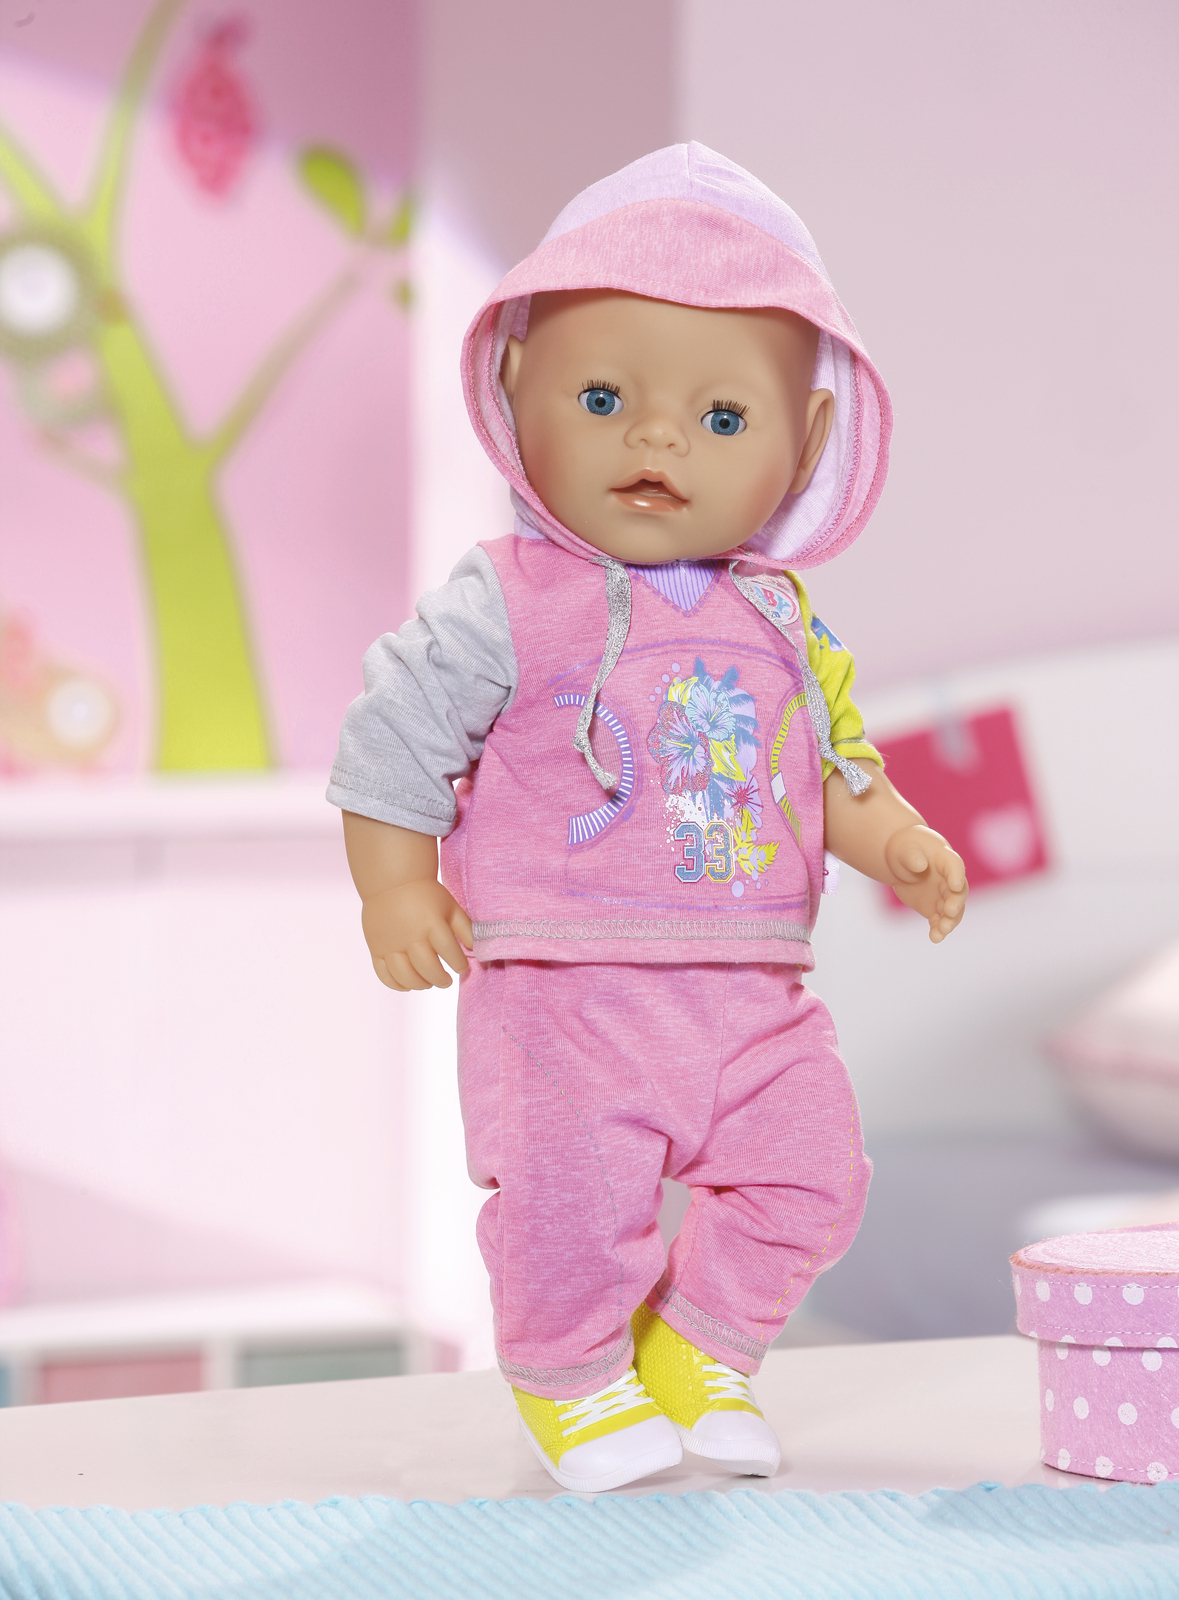 Baby Gift Nz : Baby born deluxe jogging set pink toy at mighty ape nz